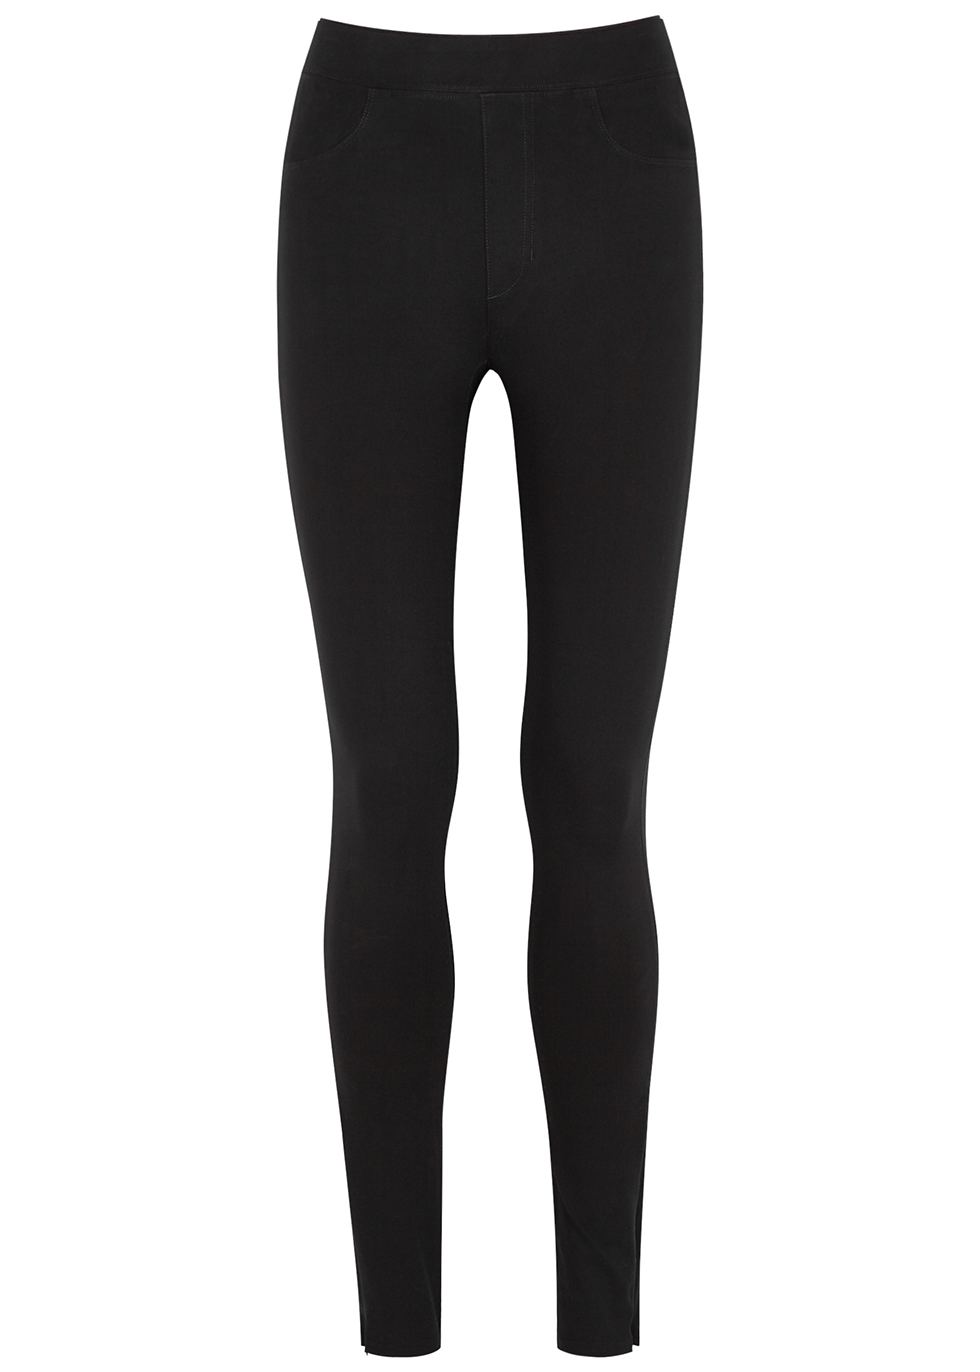 Reflex black stretch-jersey leggings